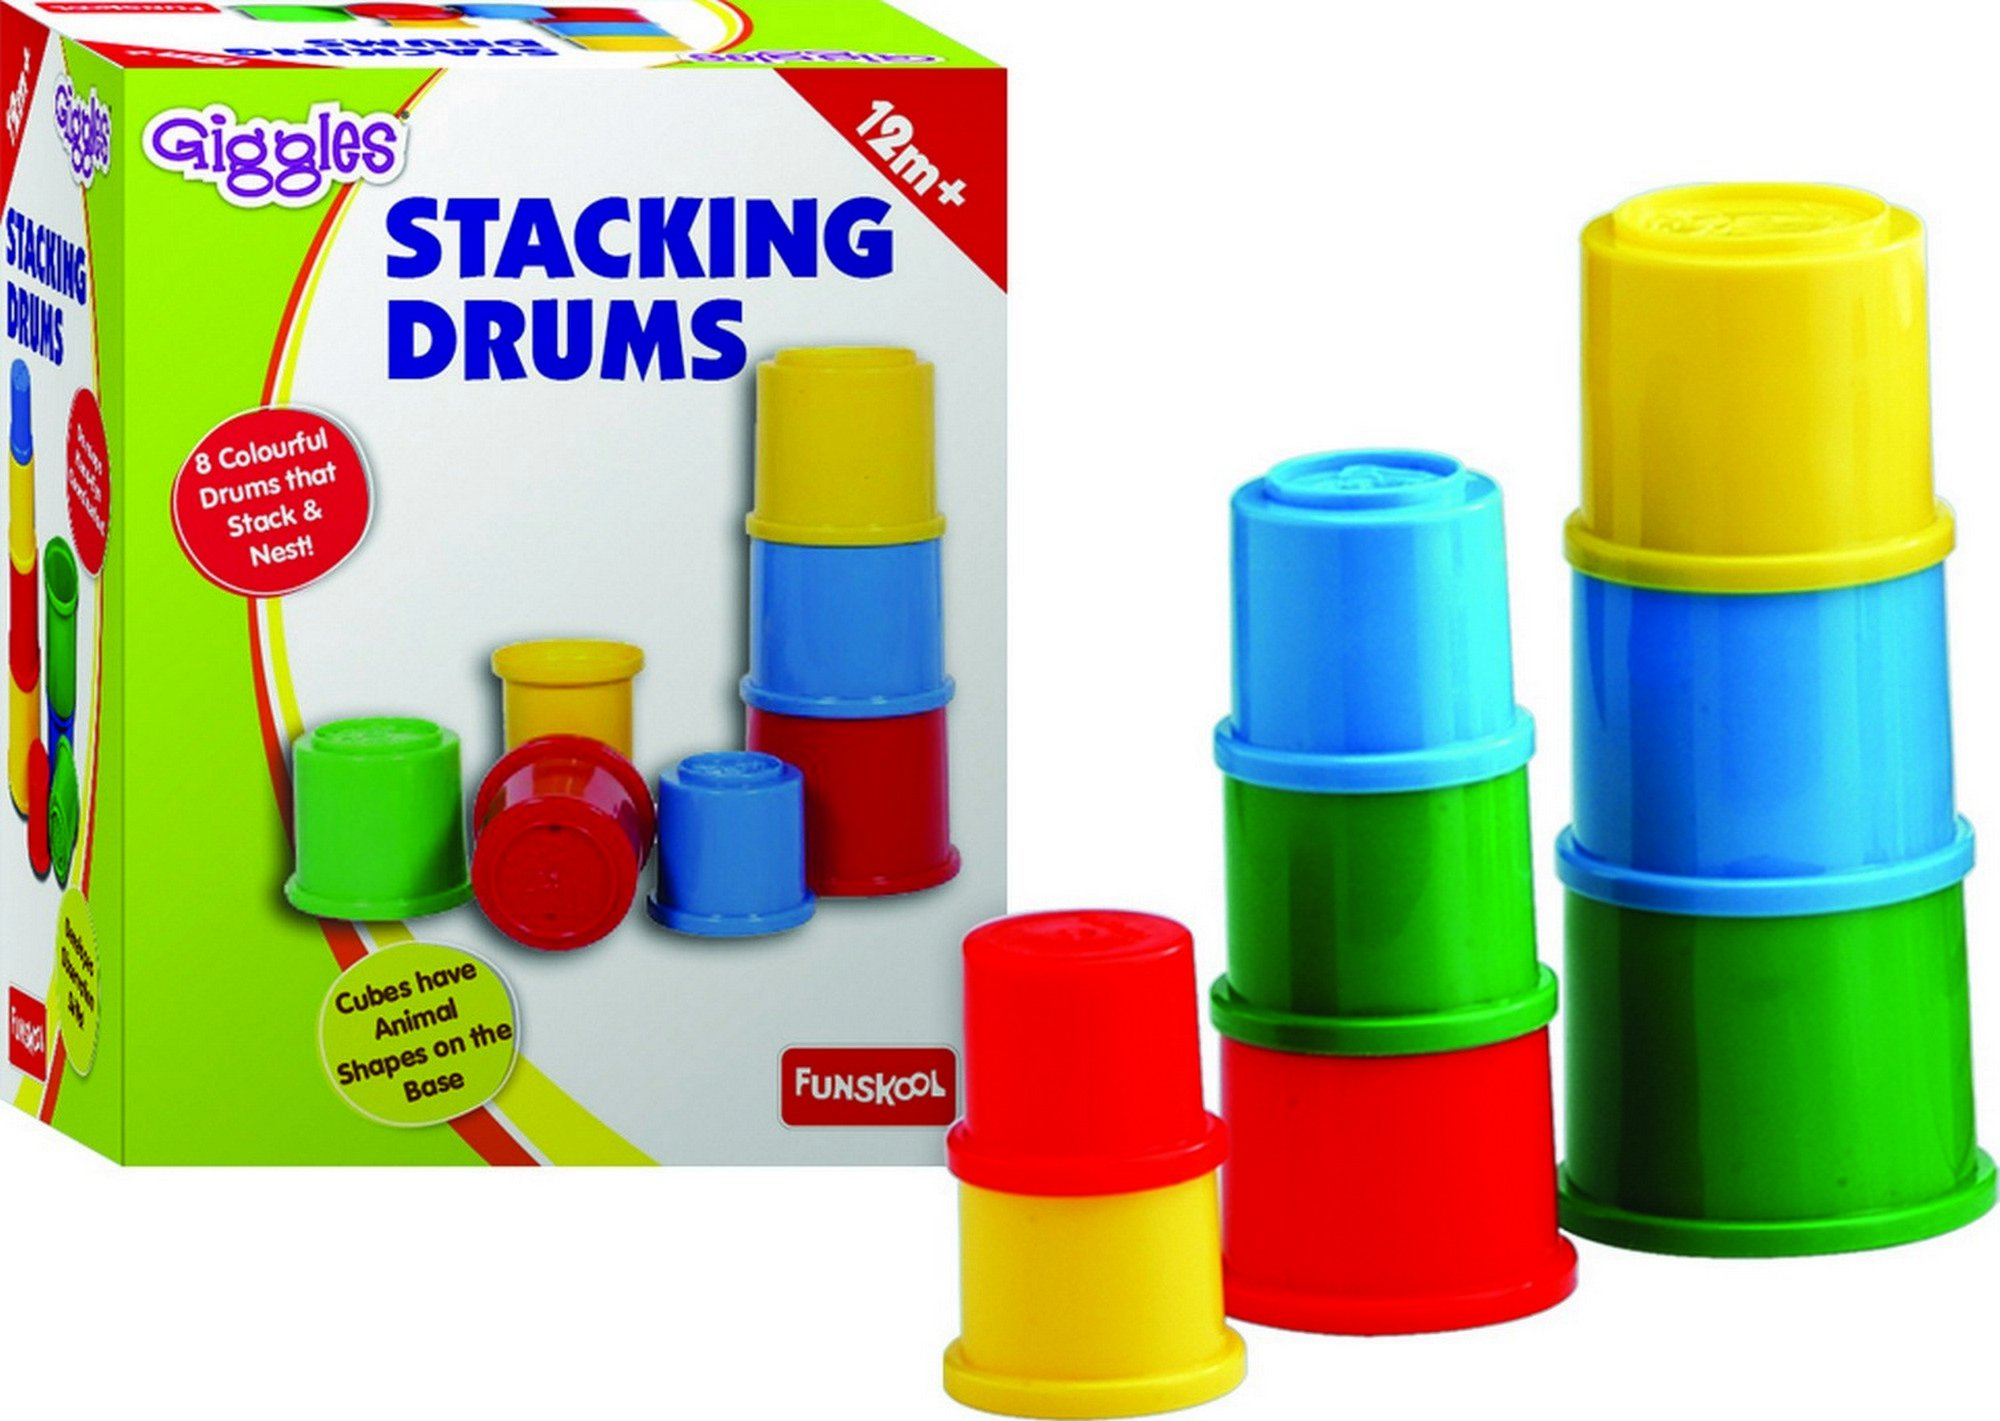 Funskool Giggles Stacking Drums product image